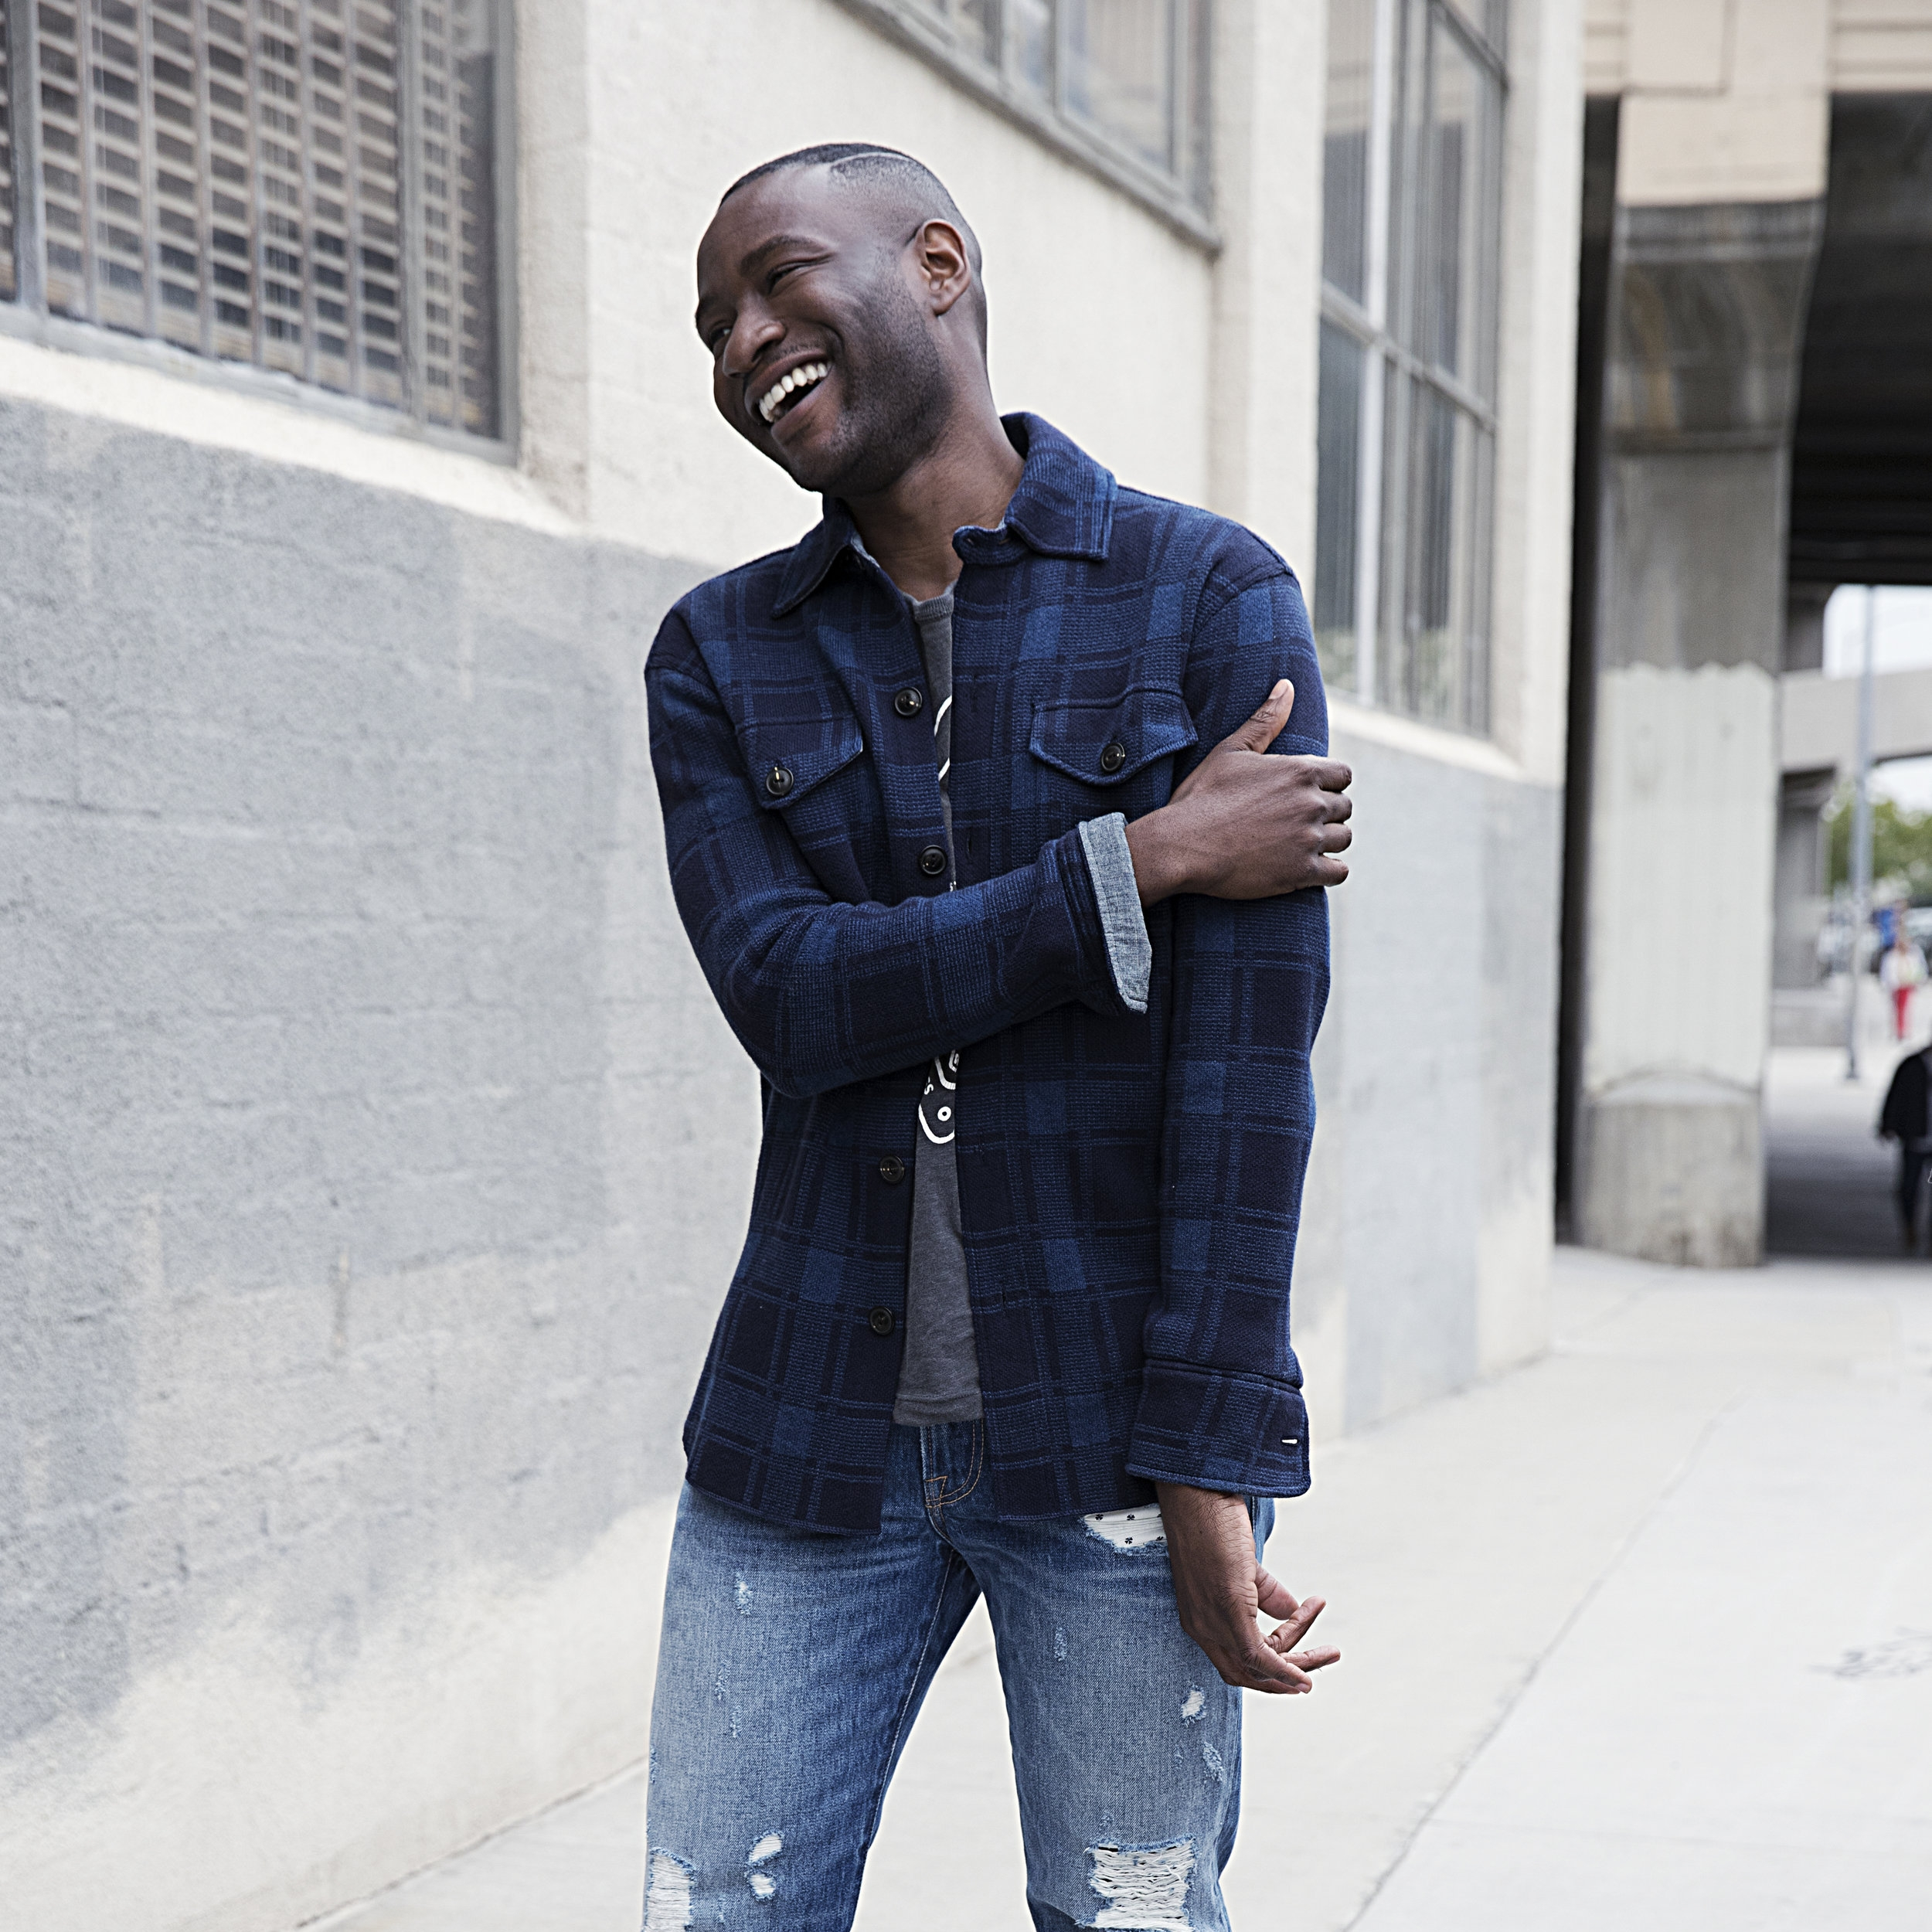 - Check out Michael's new campaign with Lucky Brand Jeans...meet The New Class!